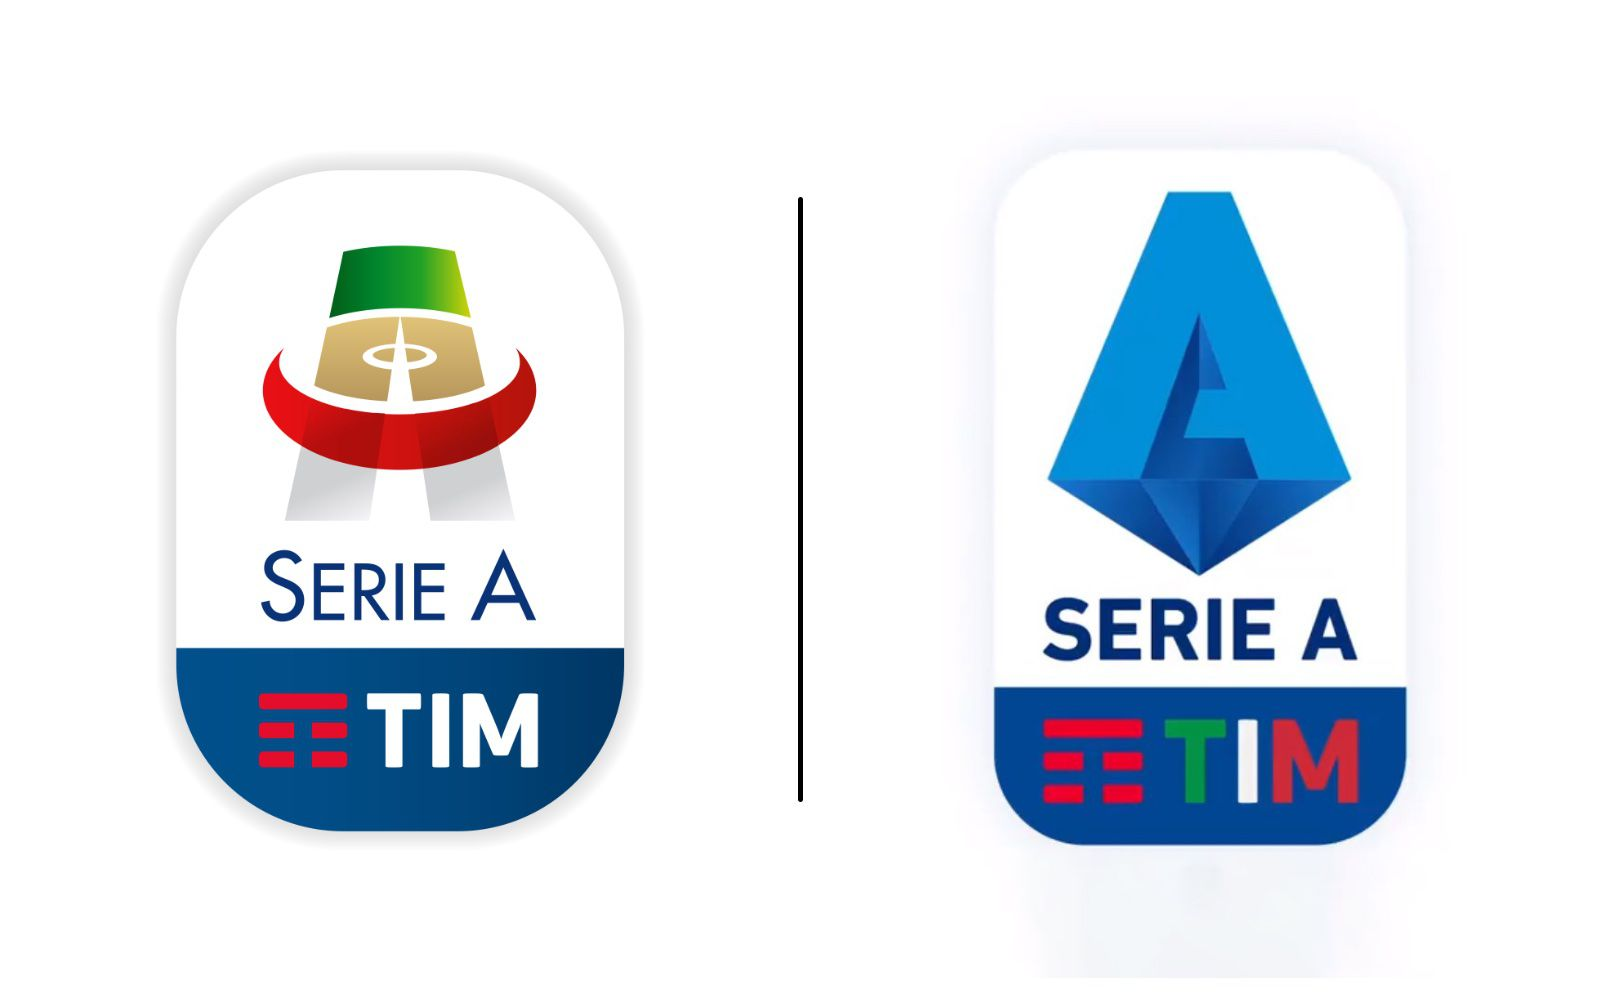 Serie A: All-New Serie A Logo 2019 Revealed